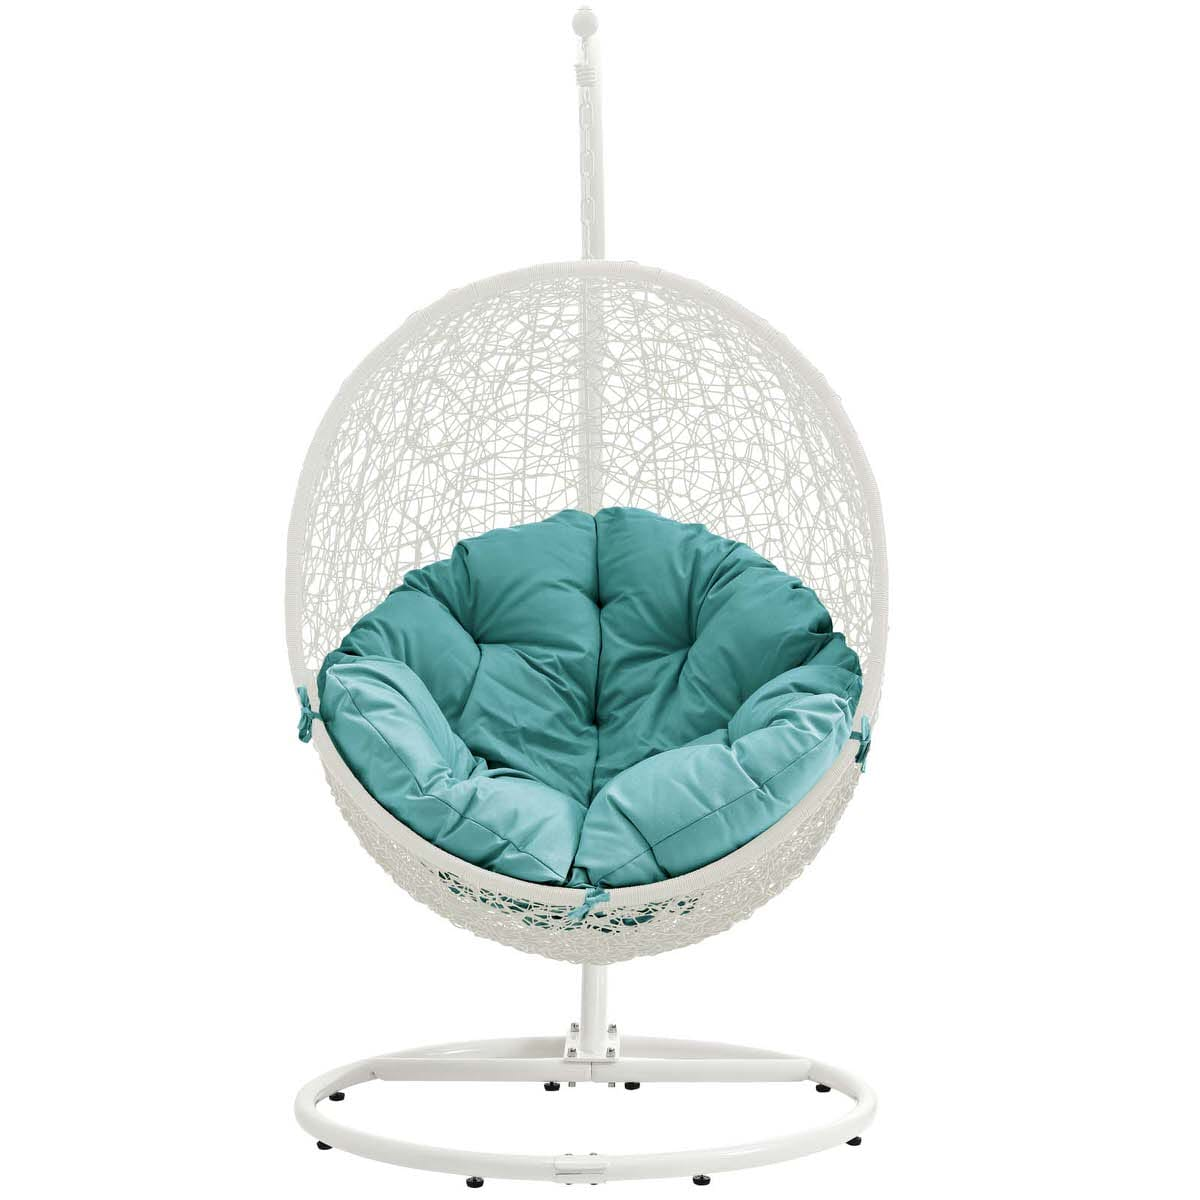 Chair Stand Hide Outdoor Patio Swing Chair With Stand White Turquoise